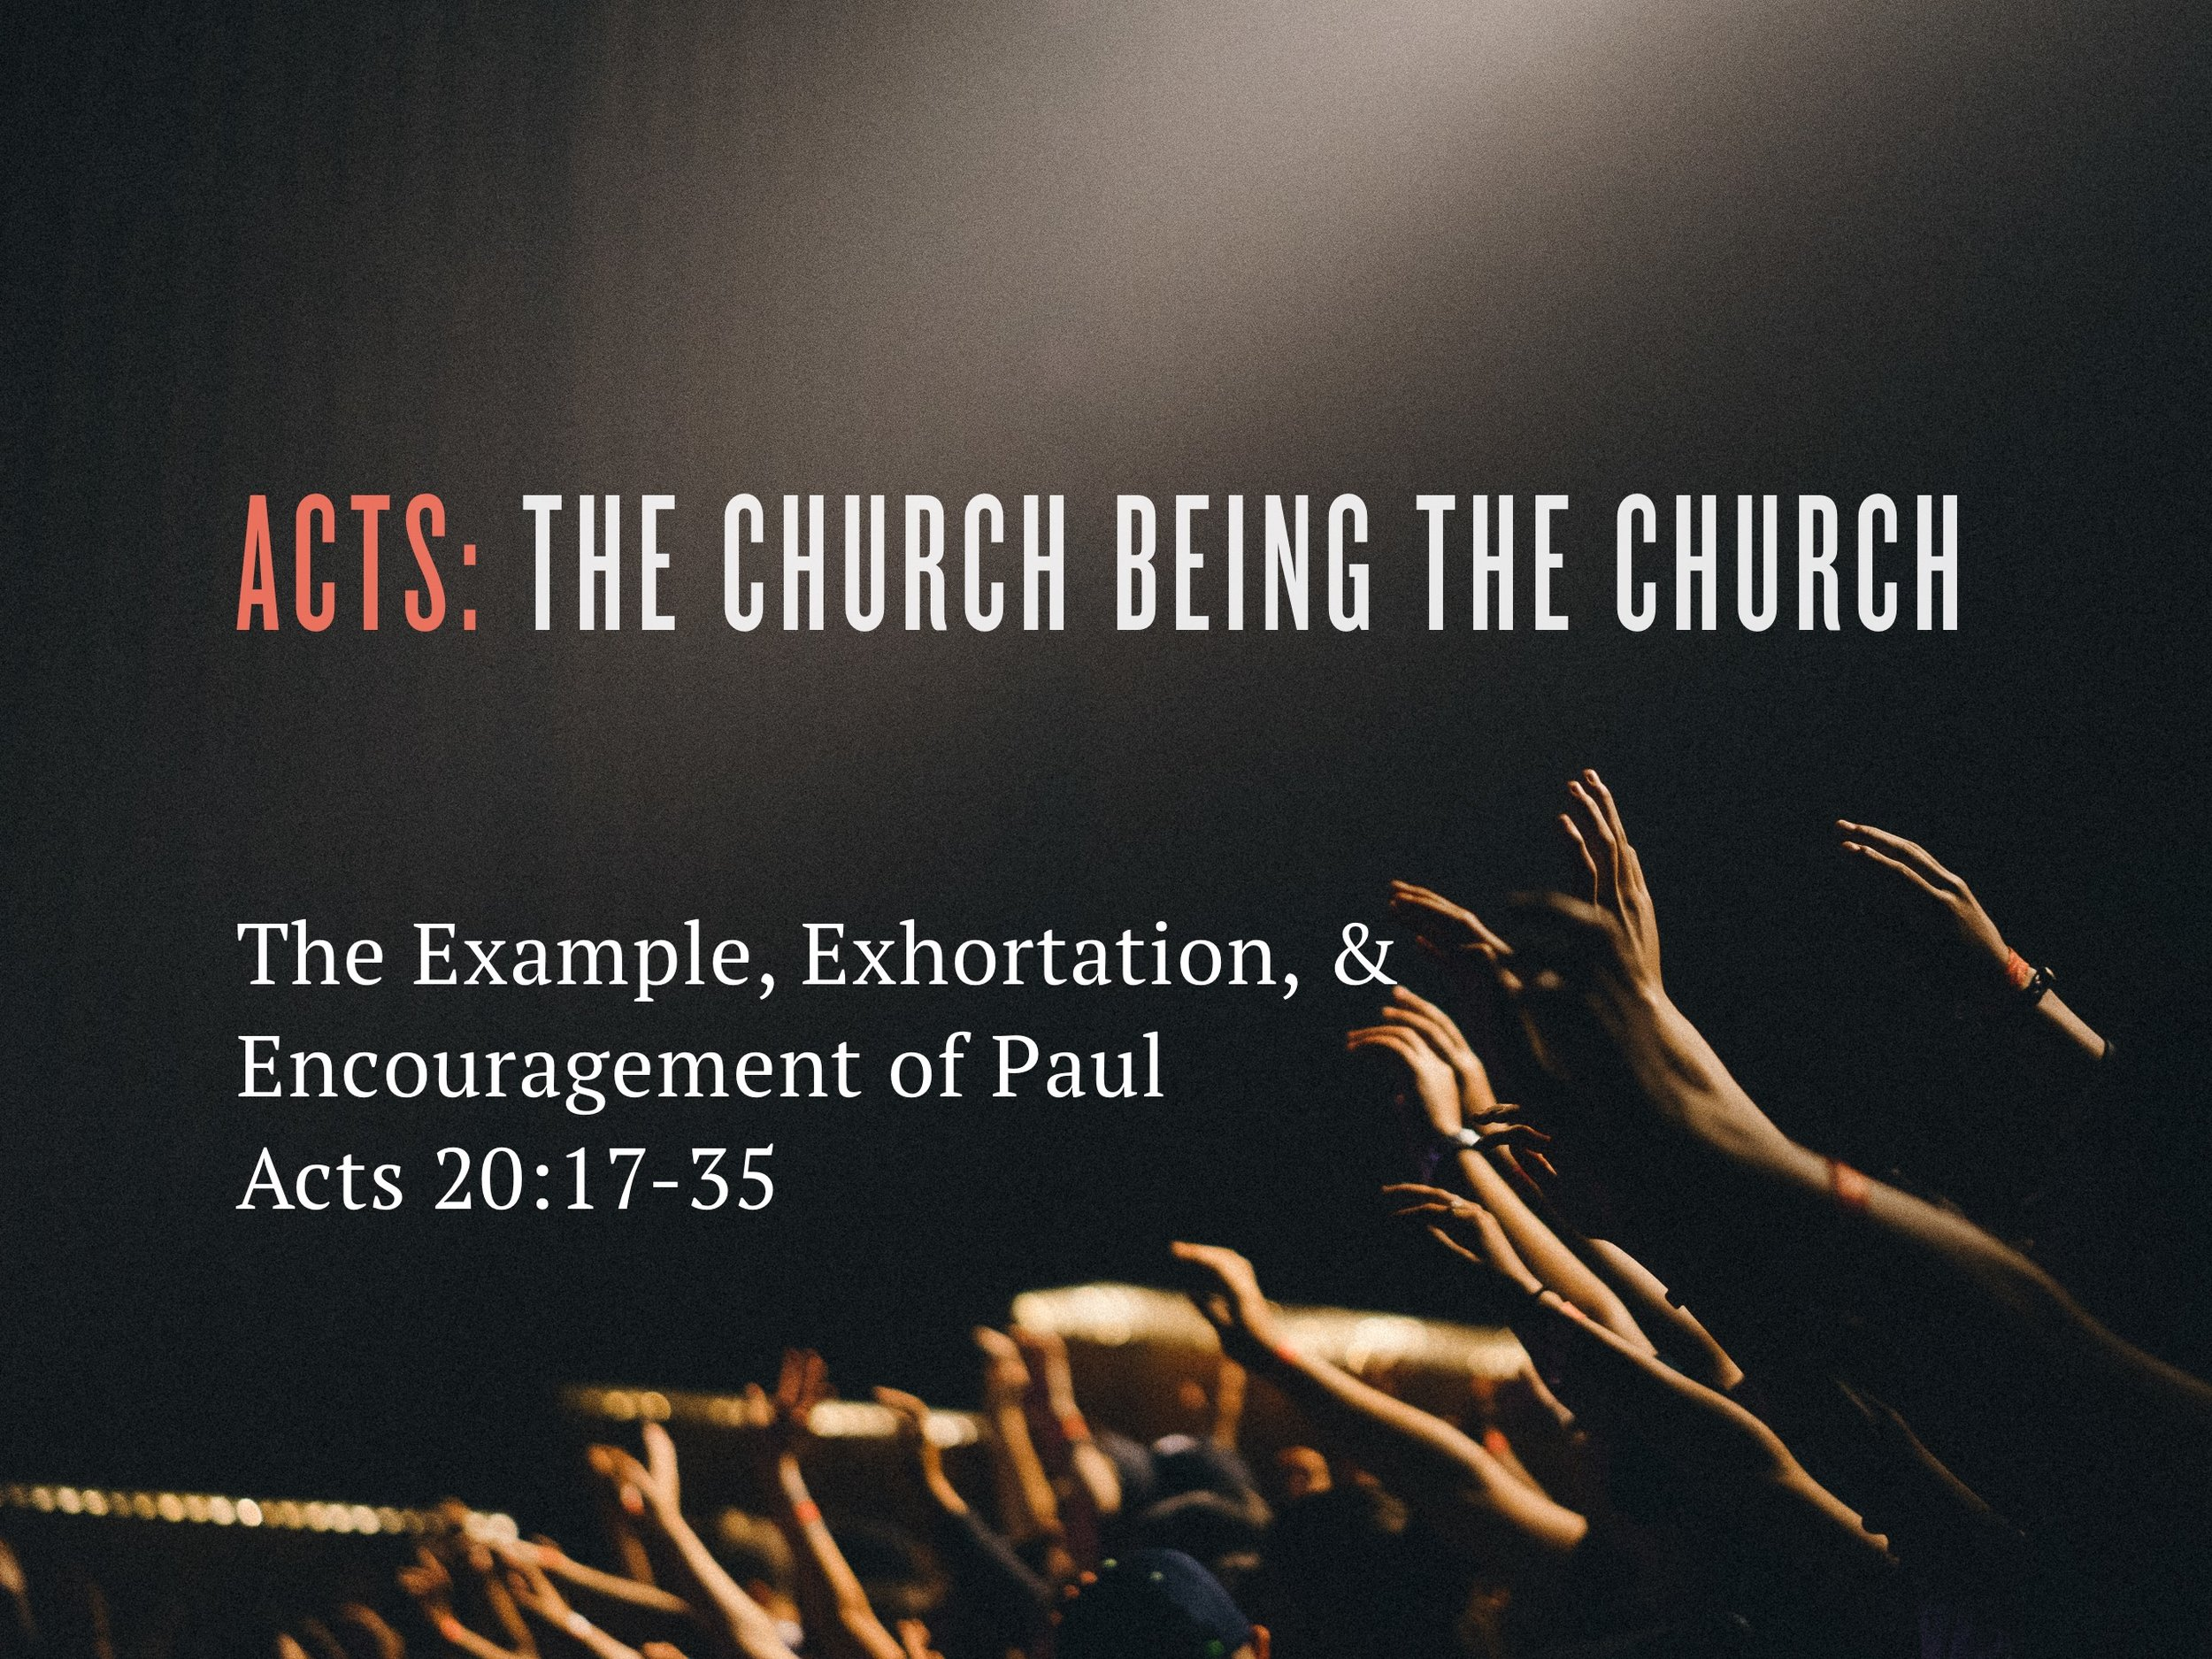 2018.02.25 Acts The Church Being The Church Slide.jpg